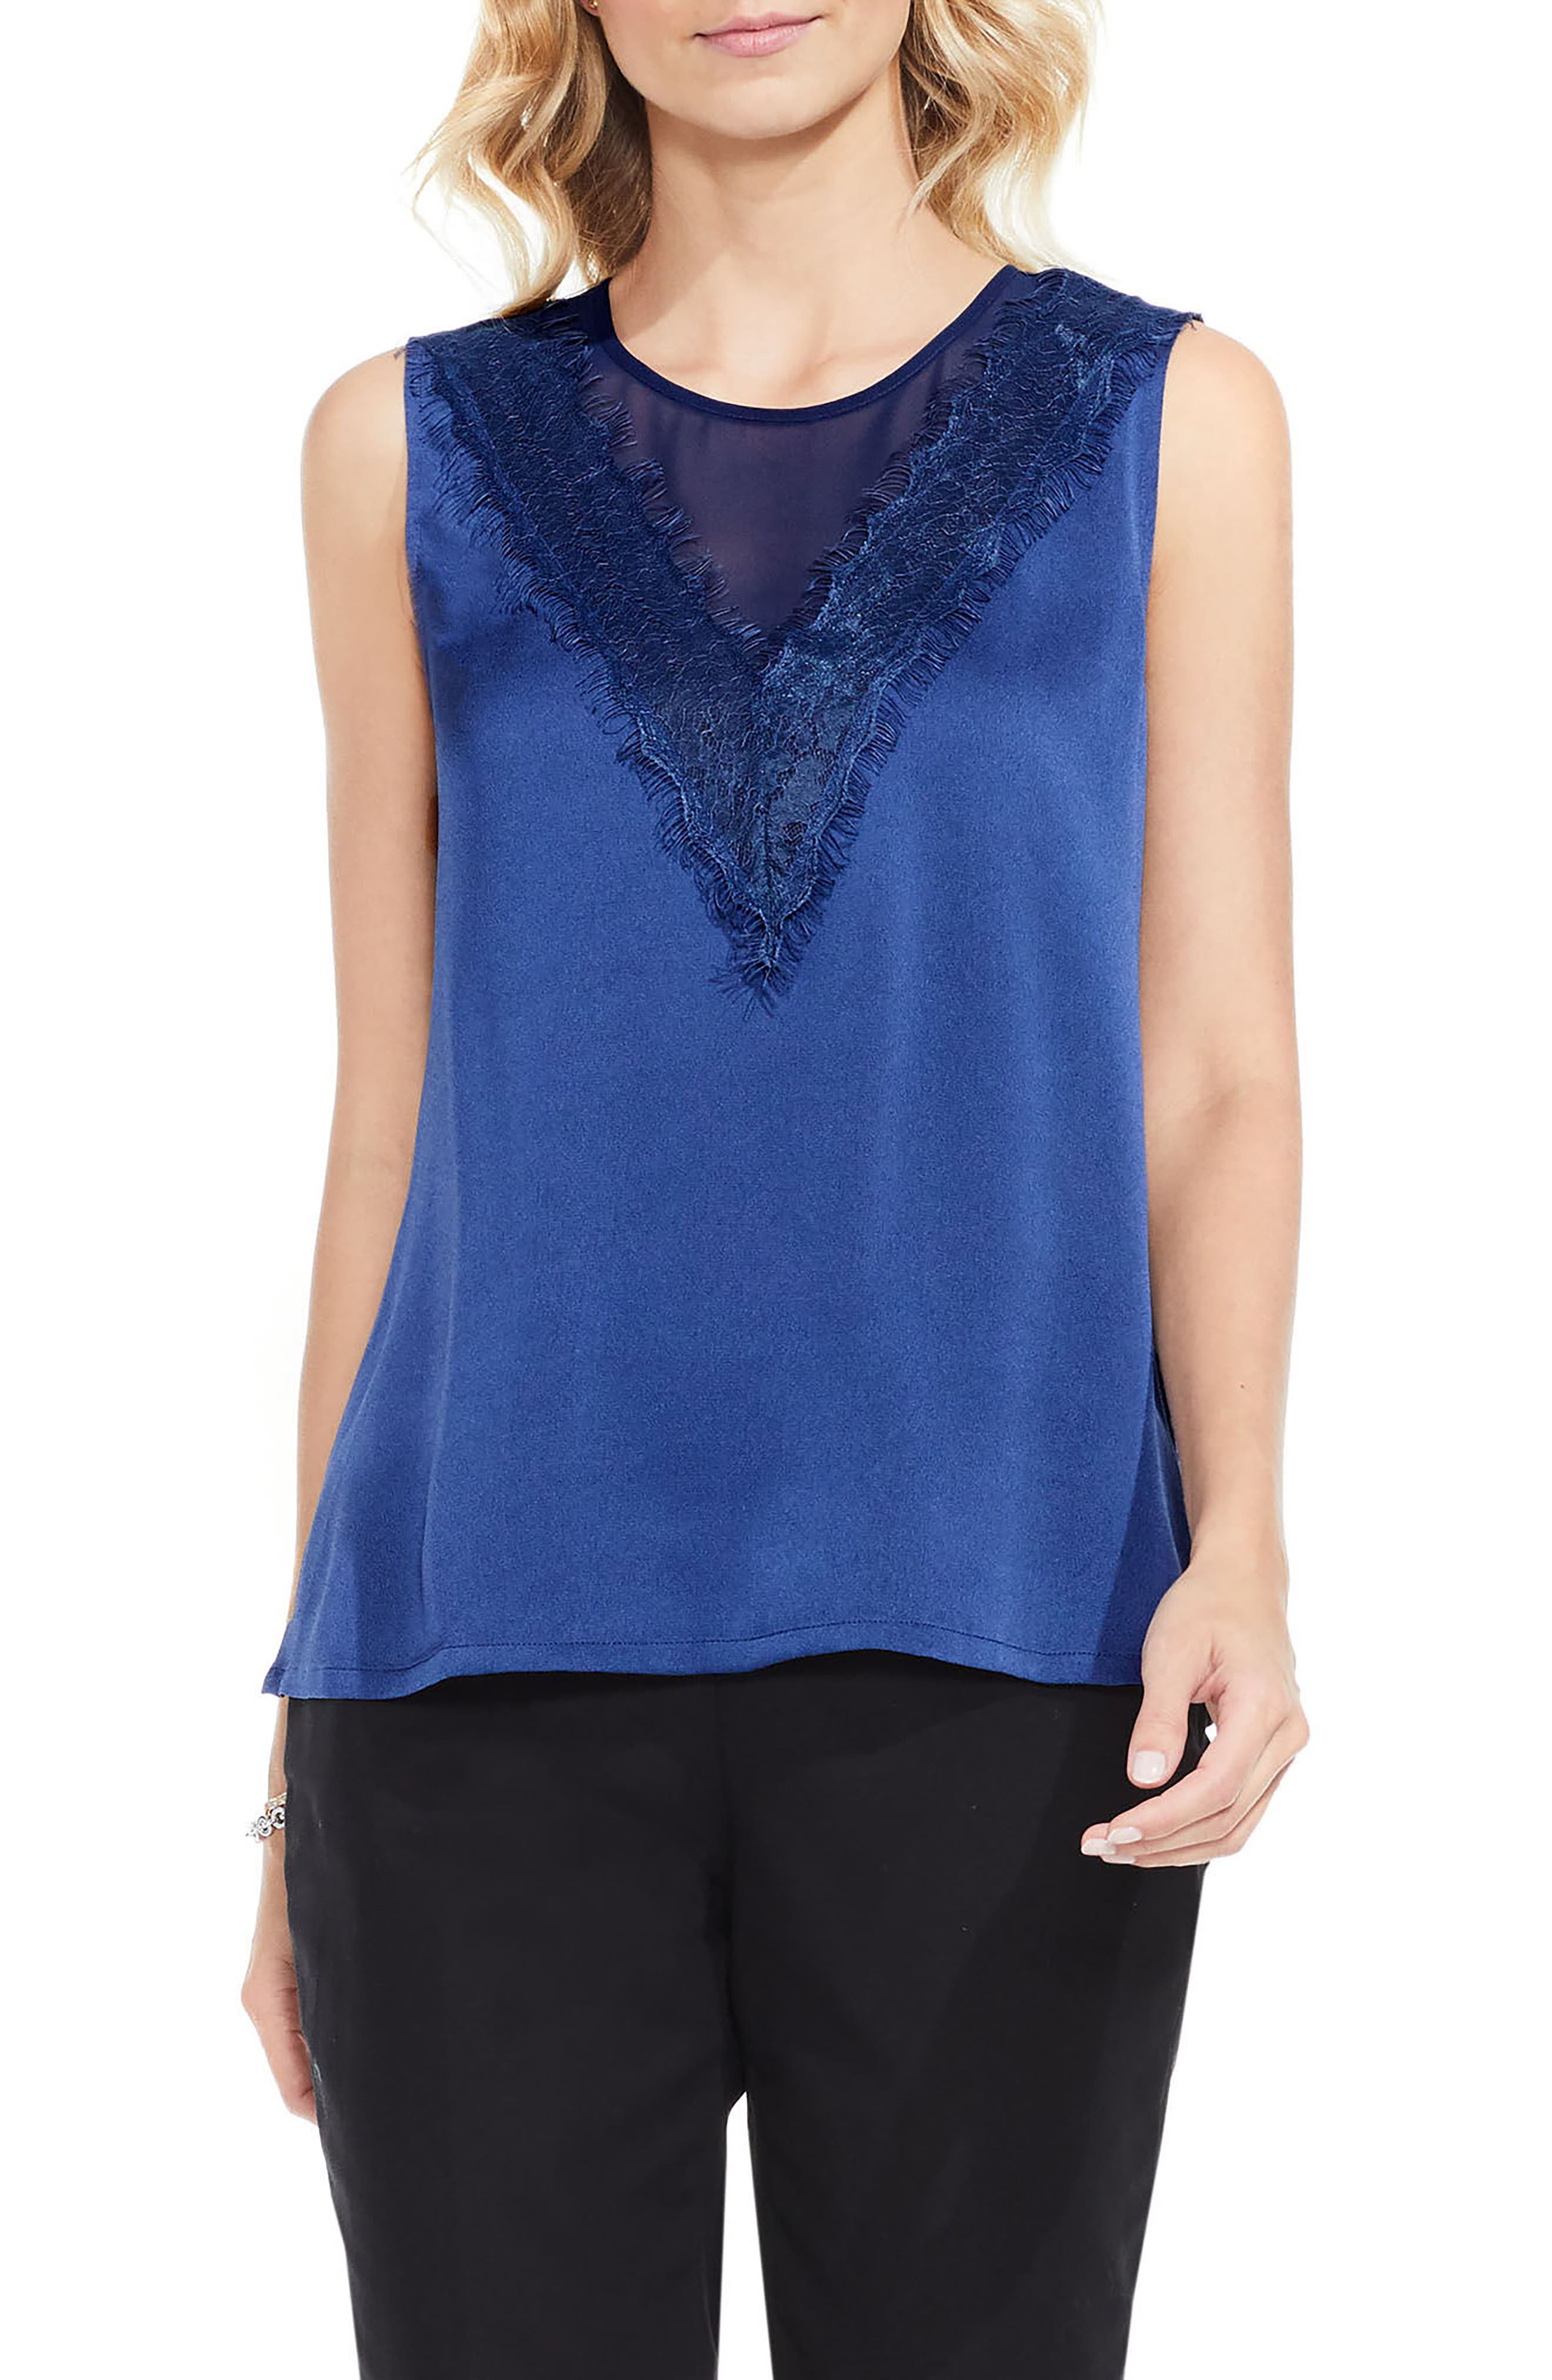 Alternate Image 1 Selected - Vince Camuto Lace Trim Blouse